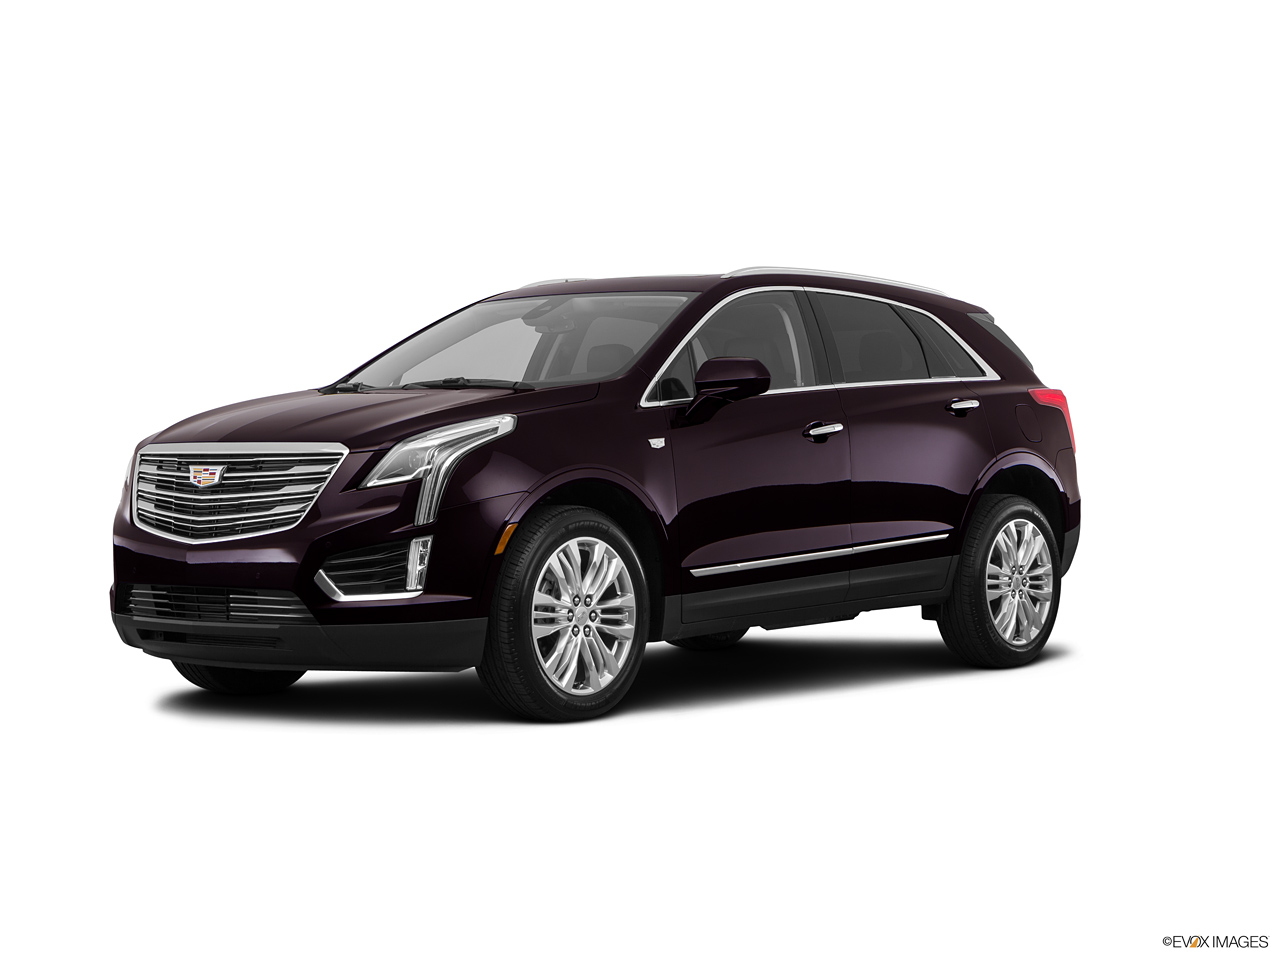 car pictures list for cadillac xt5 crossover 2018 3 6l awd luxury uae yallamotor. Black Bedroom Furniture Sets. Home Design Ideas